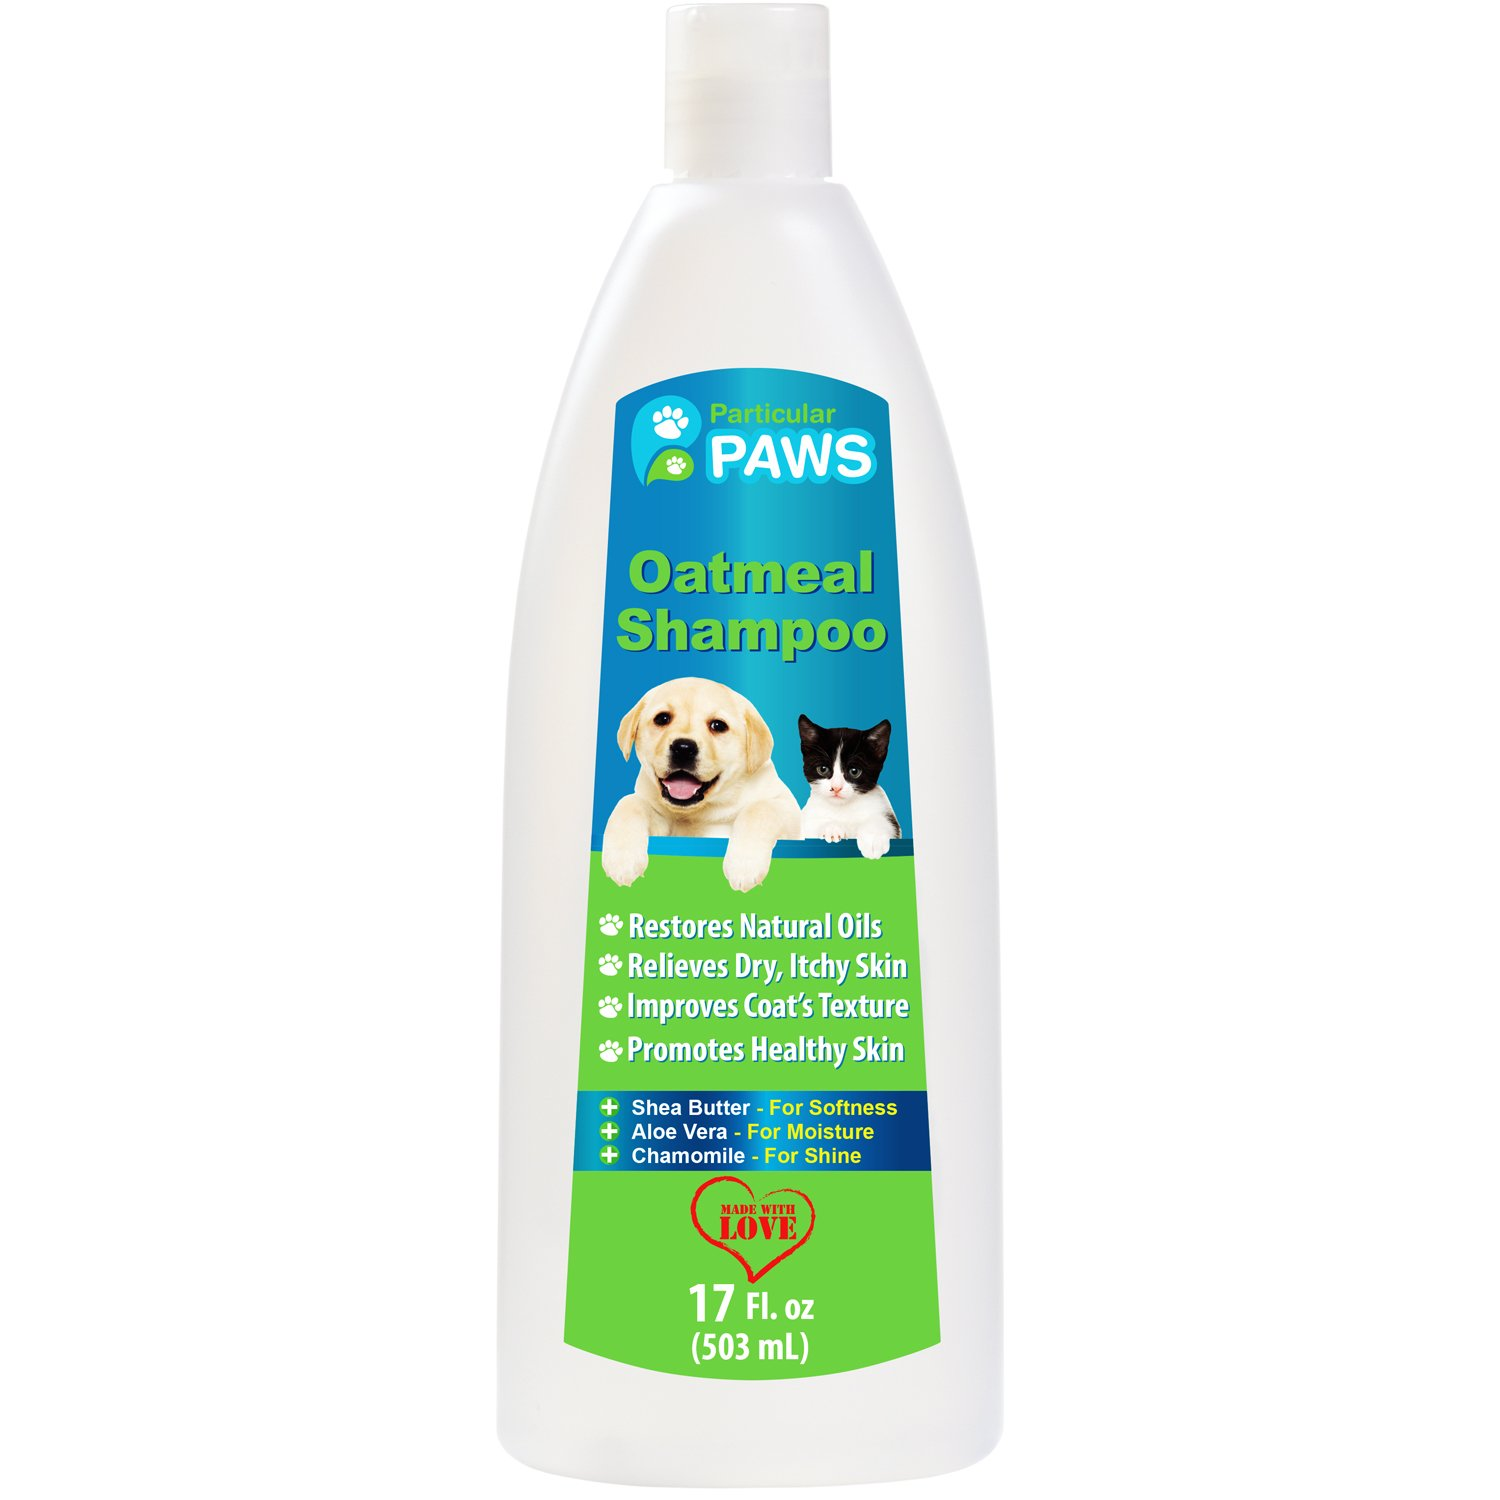 Oatmeal Shampoo for Dogs and Cats with Shea Butter, Aloe Vera, Chamomile - 12oz